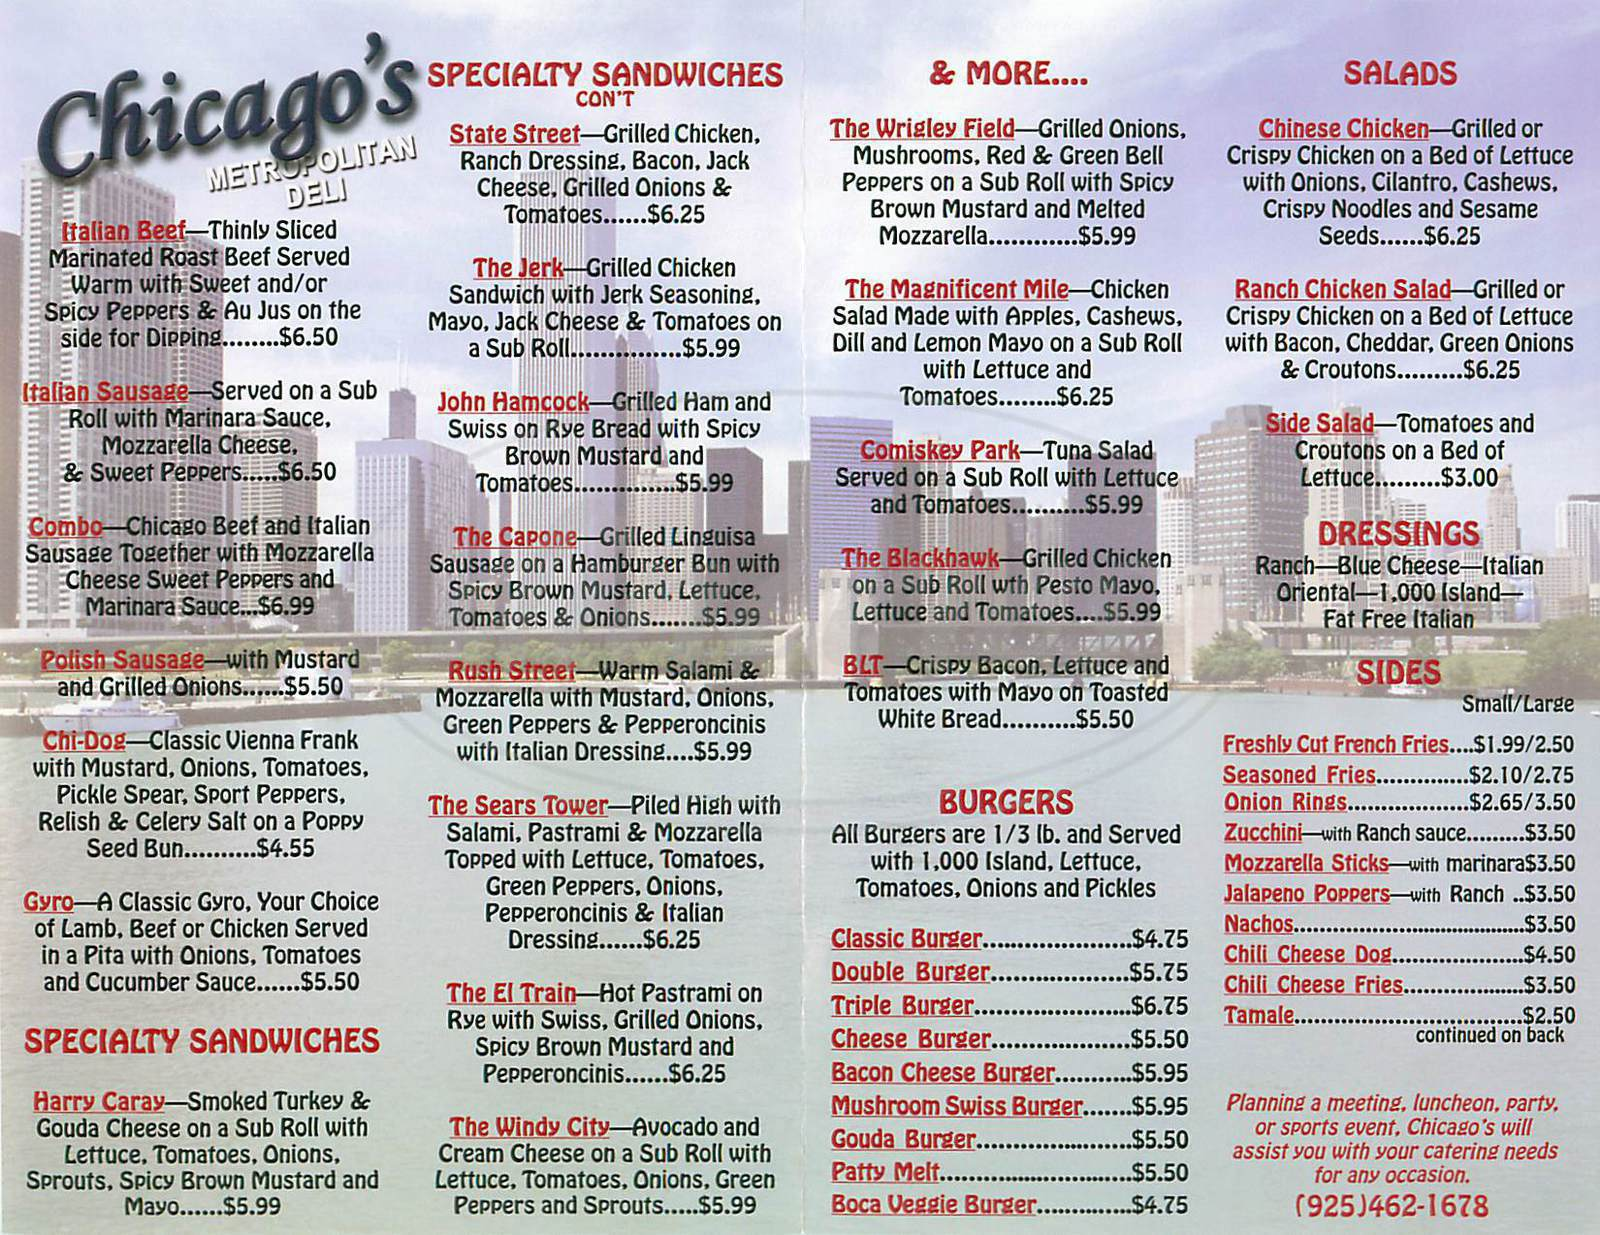 menu for Chicago Metropolitan Deli